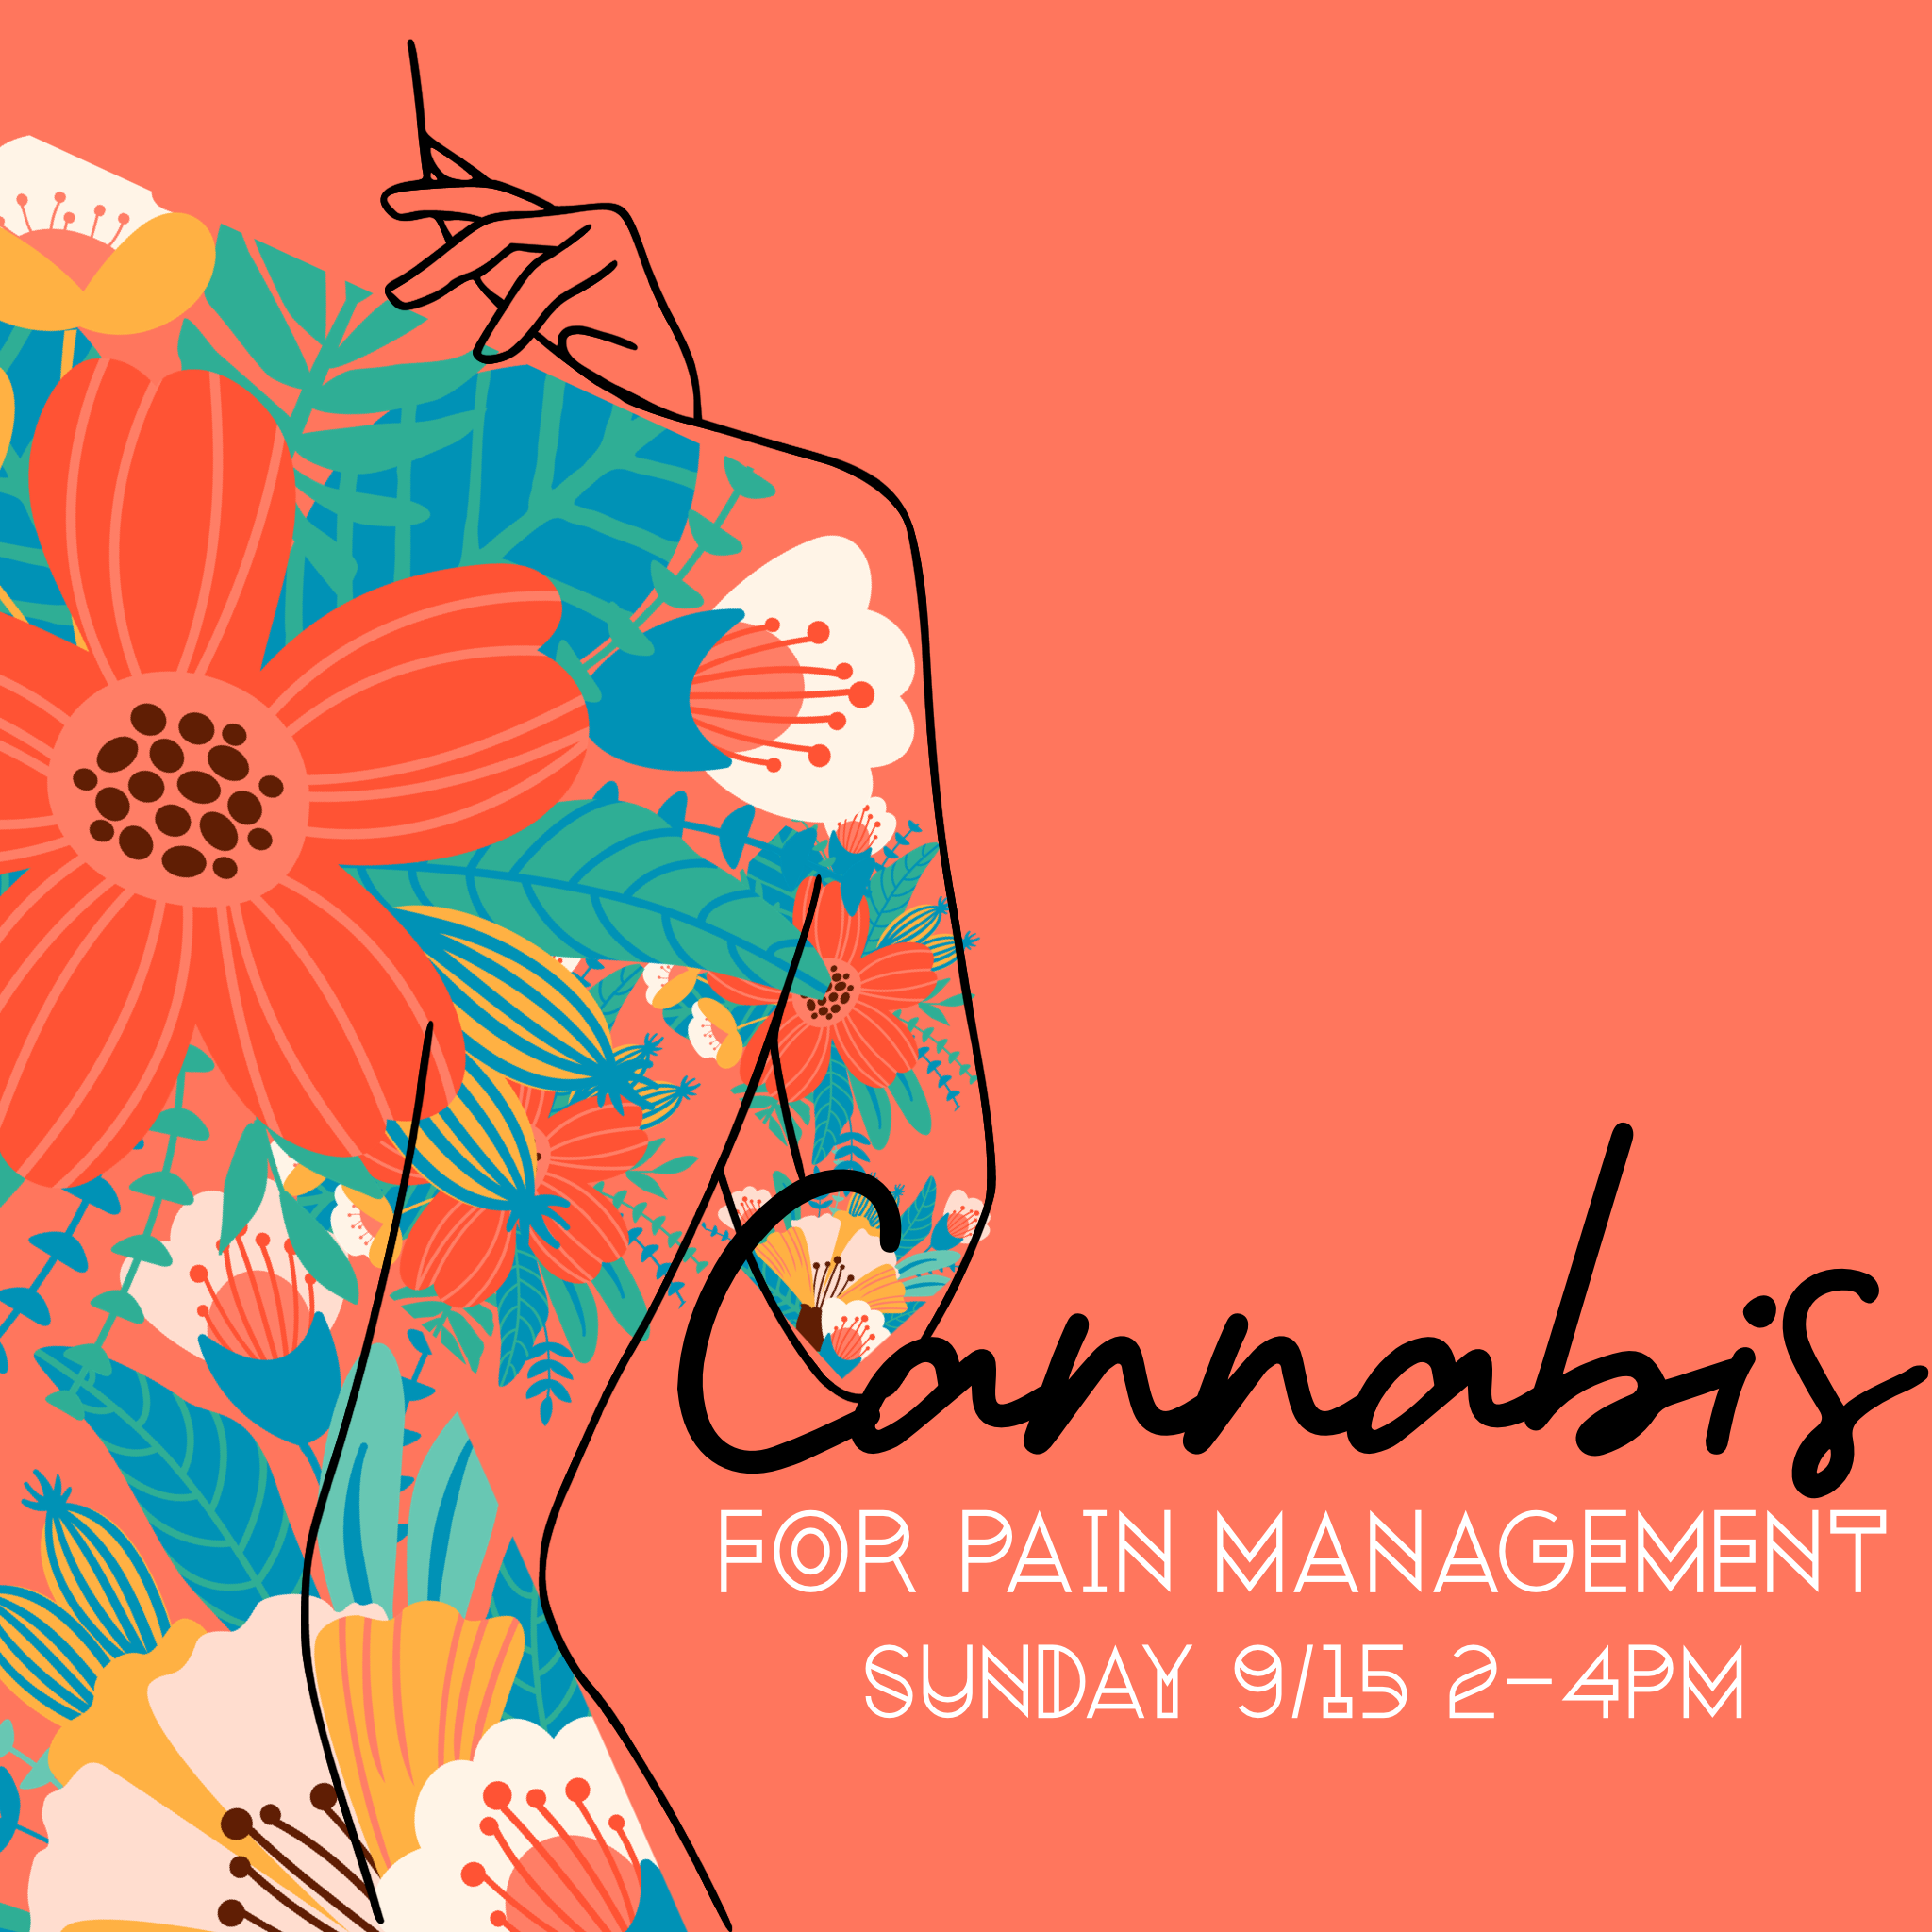 SUNDAY SEPTEMBER 15, 2019 | 2 - 4PM | SUGGESTED DONATION: $20